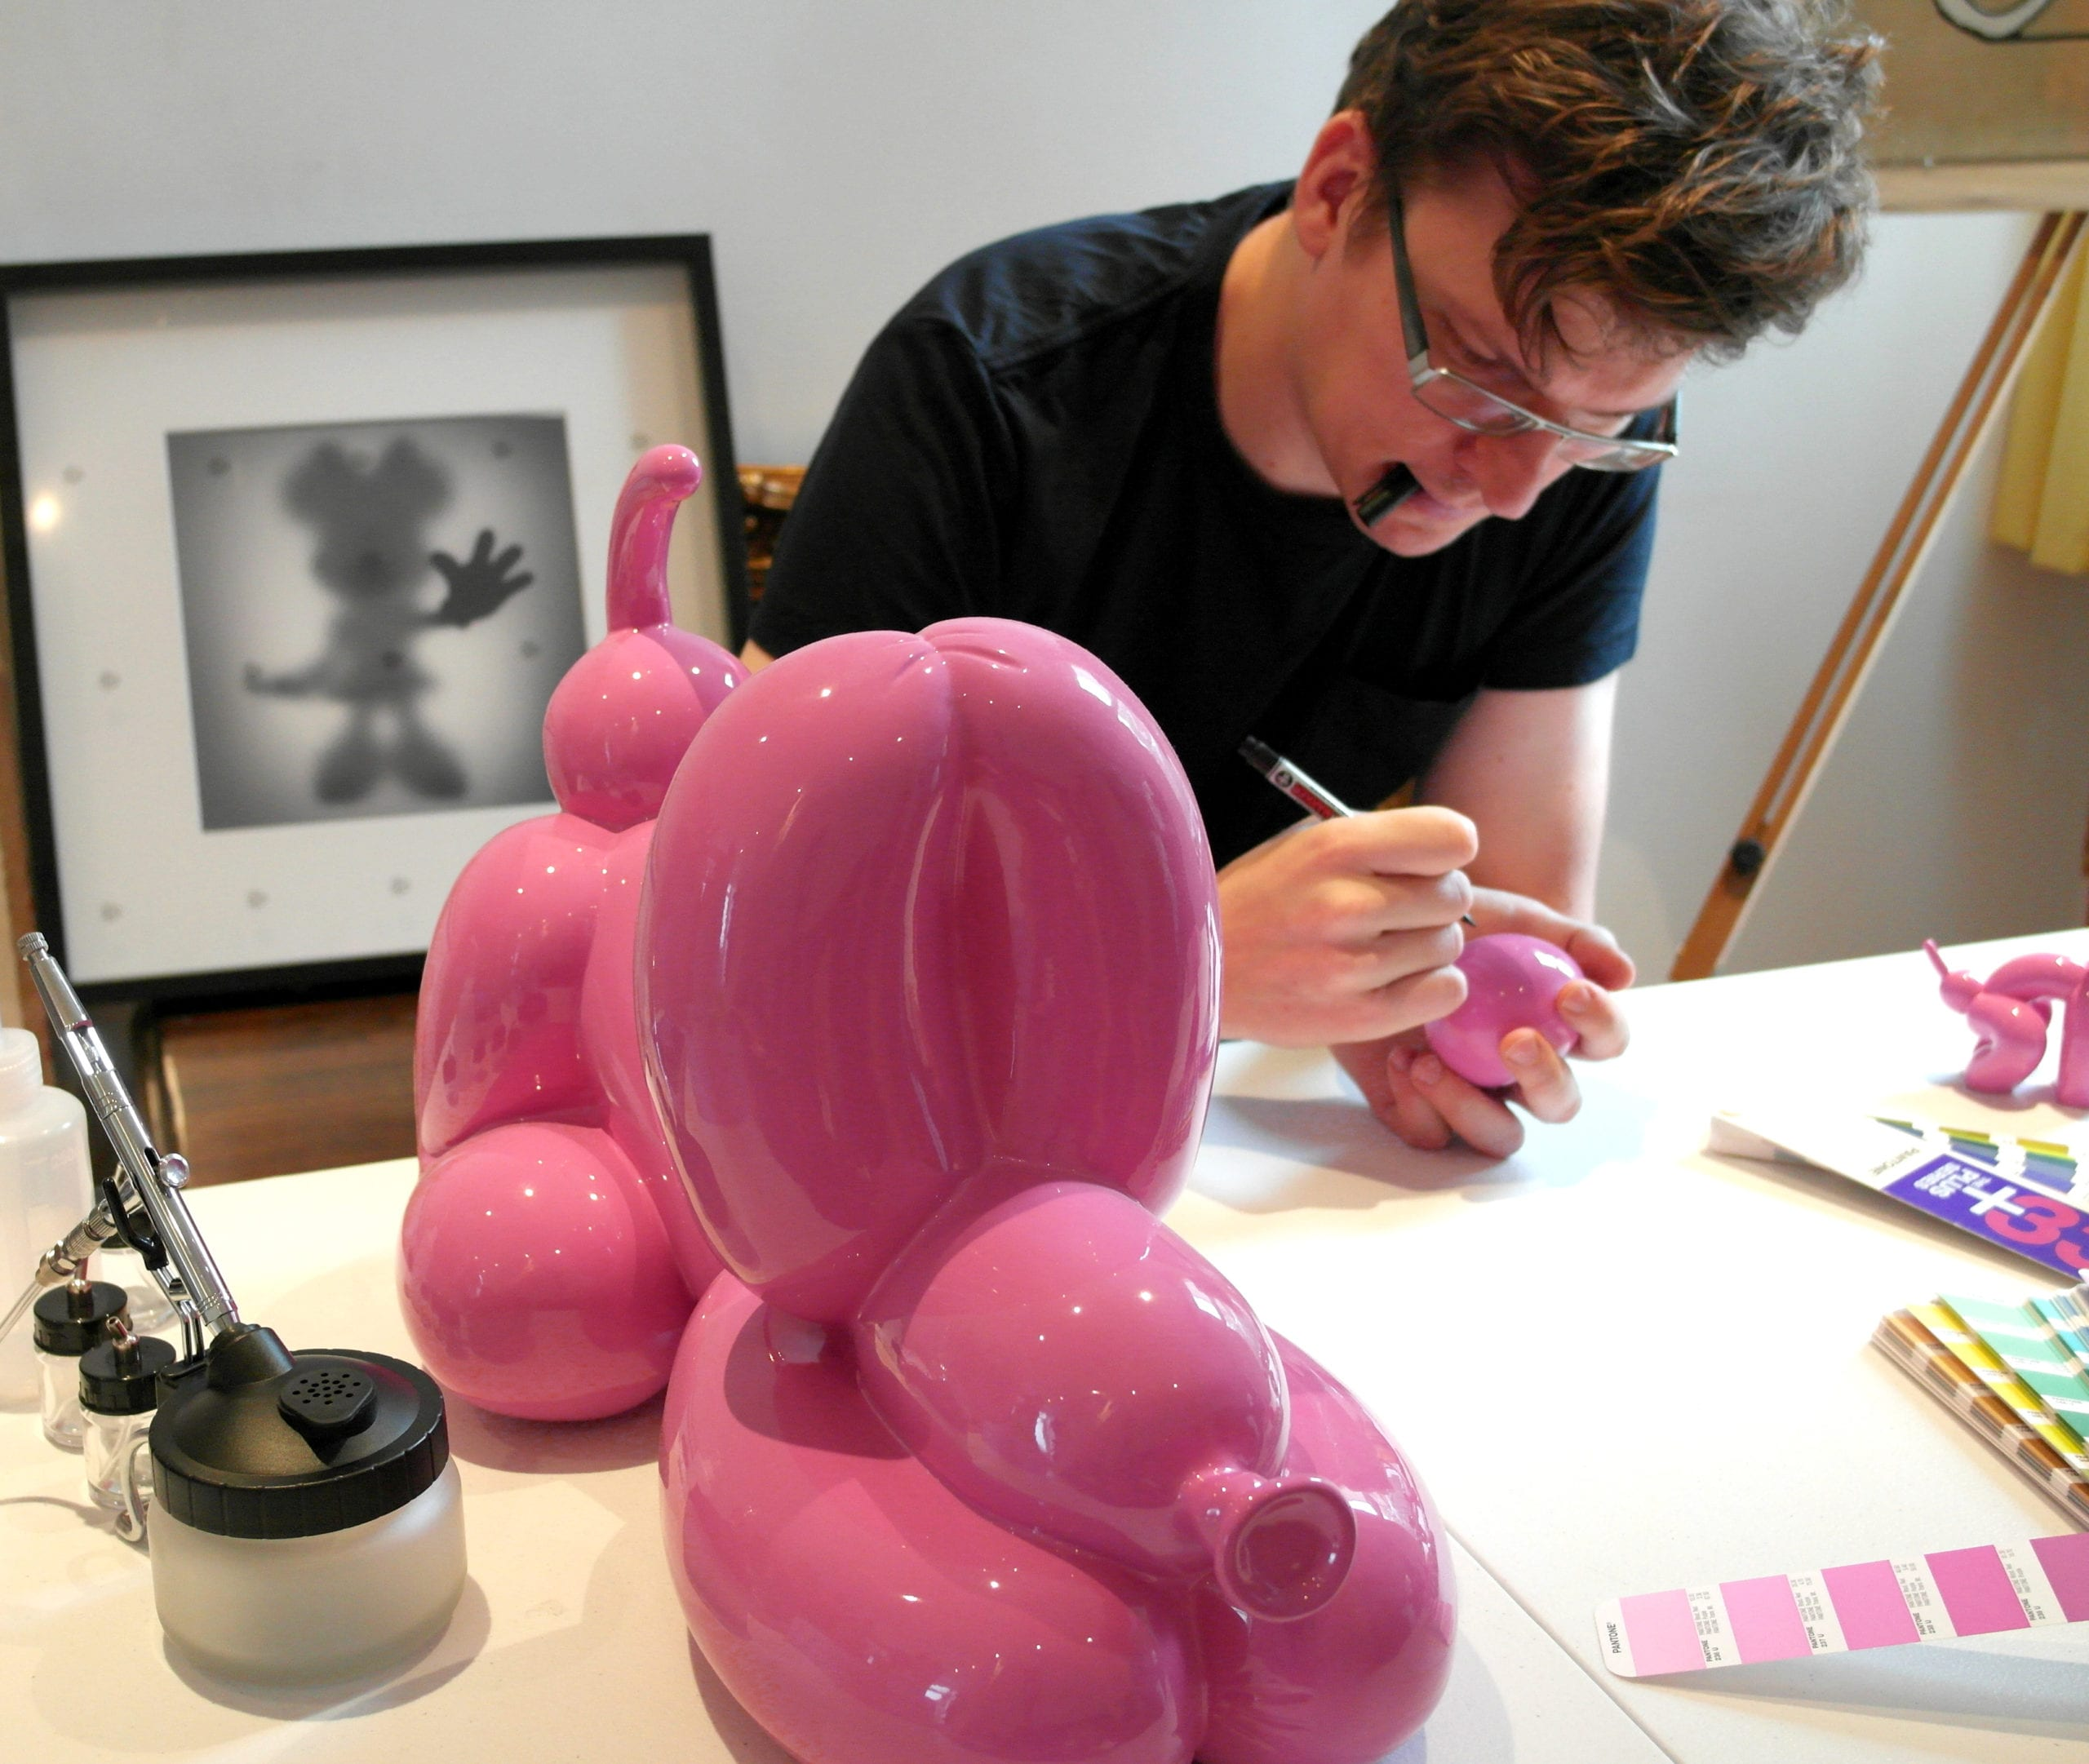 Happy POPek statue Pink 50 cm, Sebastian Burdon in his studio,